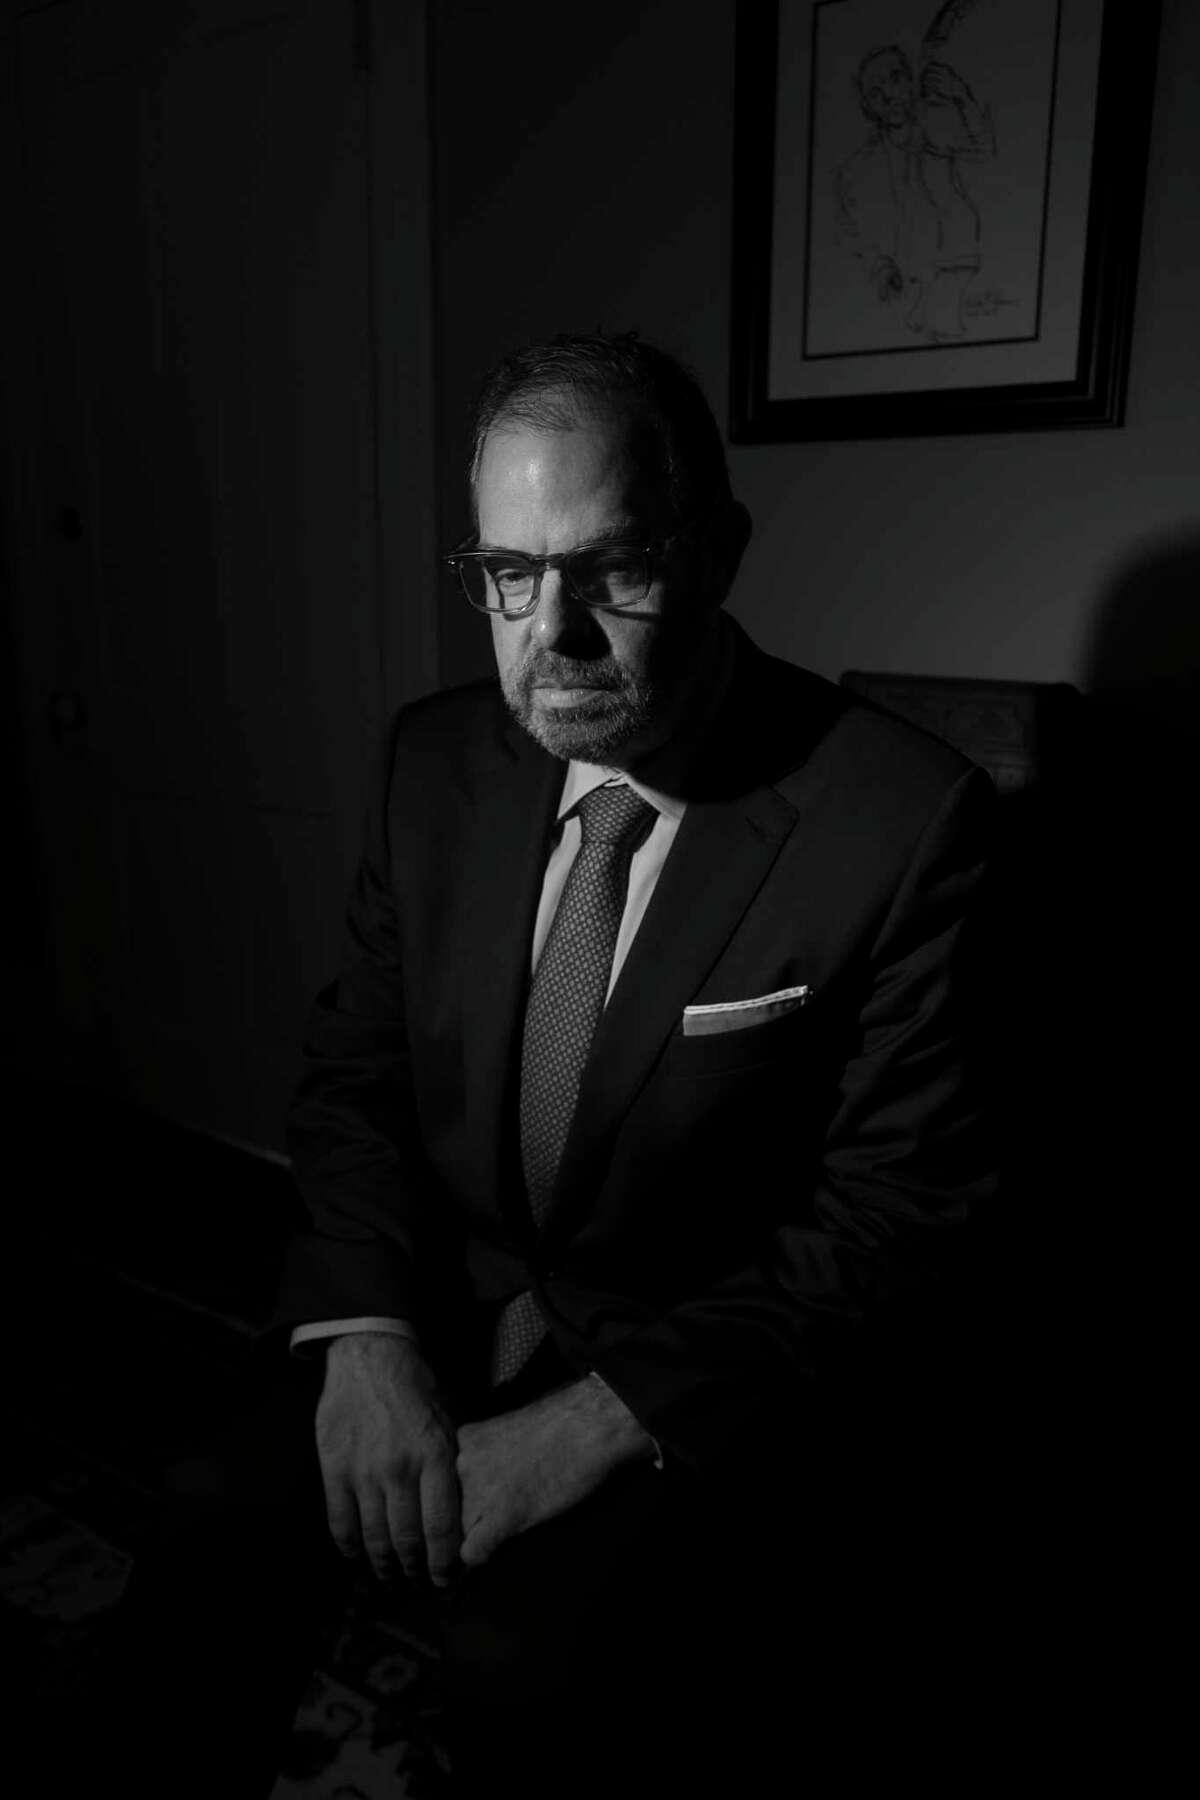 Bill Charlap at the Deer Head Inn, an unlikely jazz enclave in Delaware Water Gap, Pa., on July 18, 2020. More than four months after his last public performance, Charlap played at a storied Pennsylvania club, a glimpse into what may be the new normal for musicians. (Jonno Rattman/The New York Times)